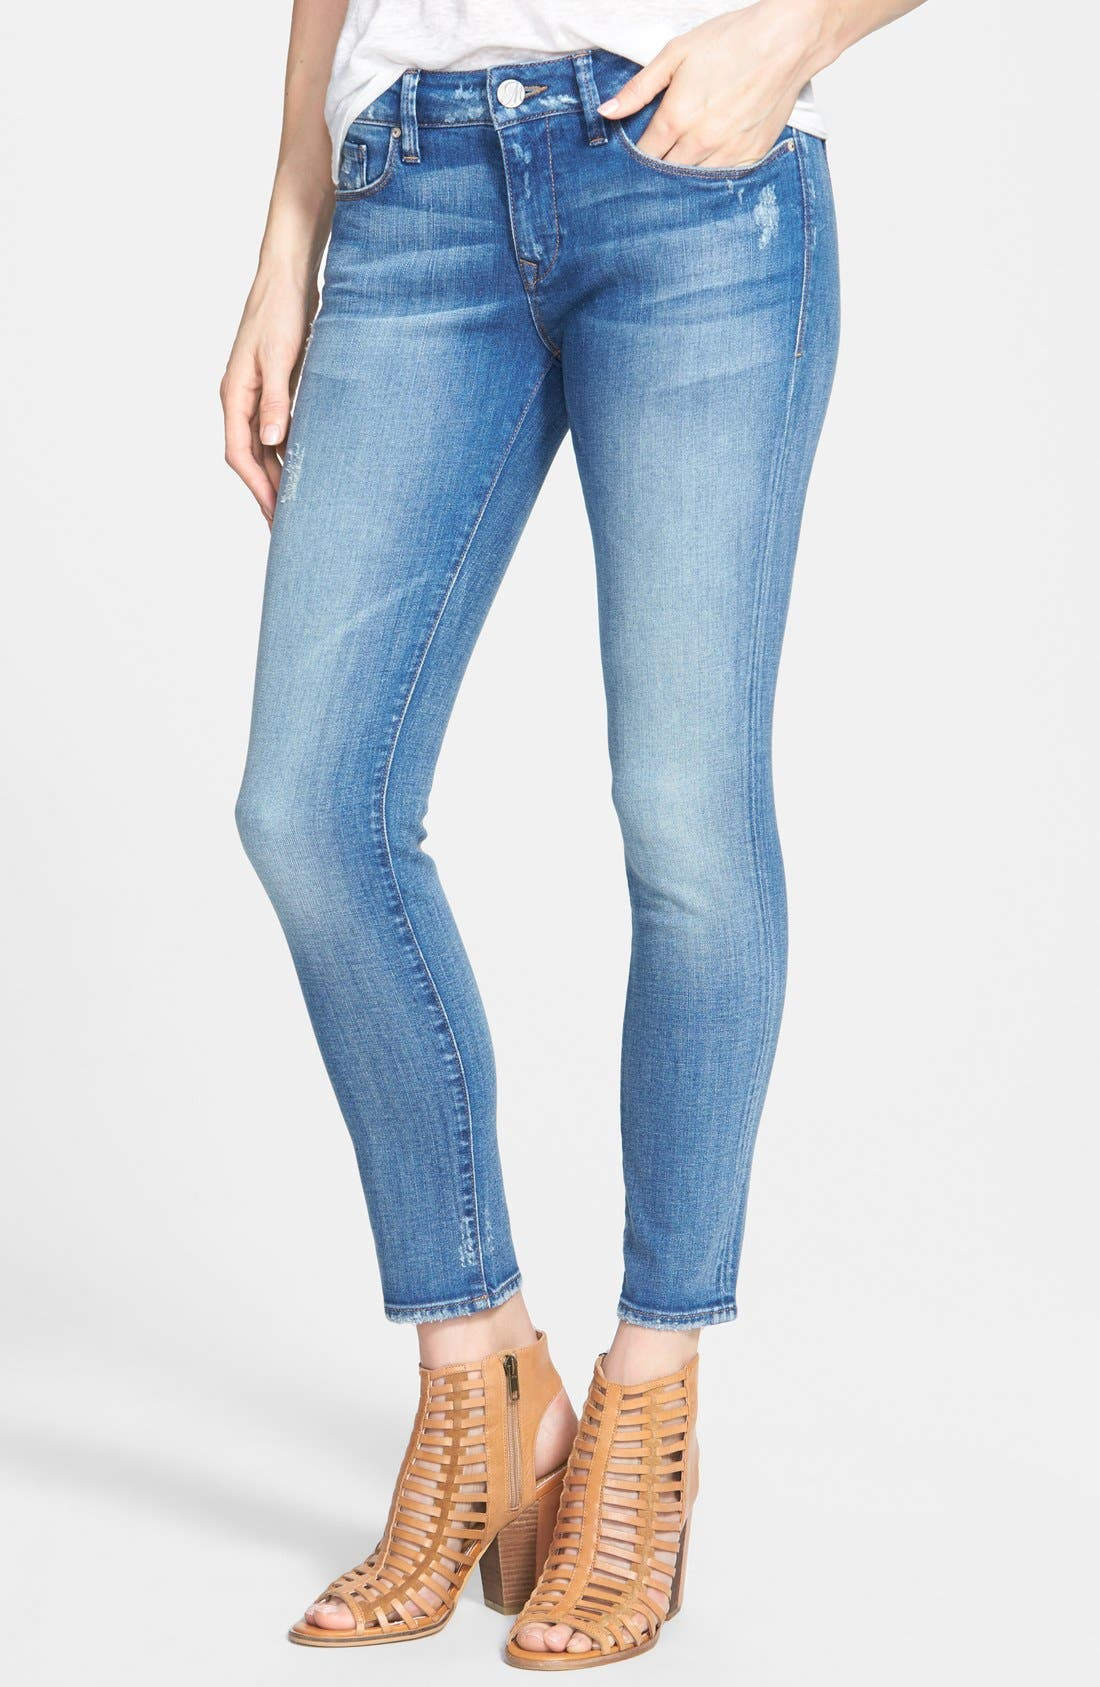 Alternate Image 1 Selected - Mavi Jeans 'Alexa' Distressed Ankle Skinny Jeans (Blue)